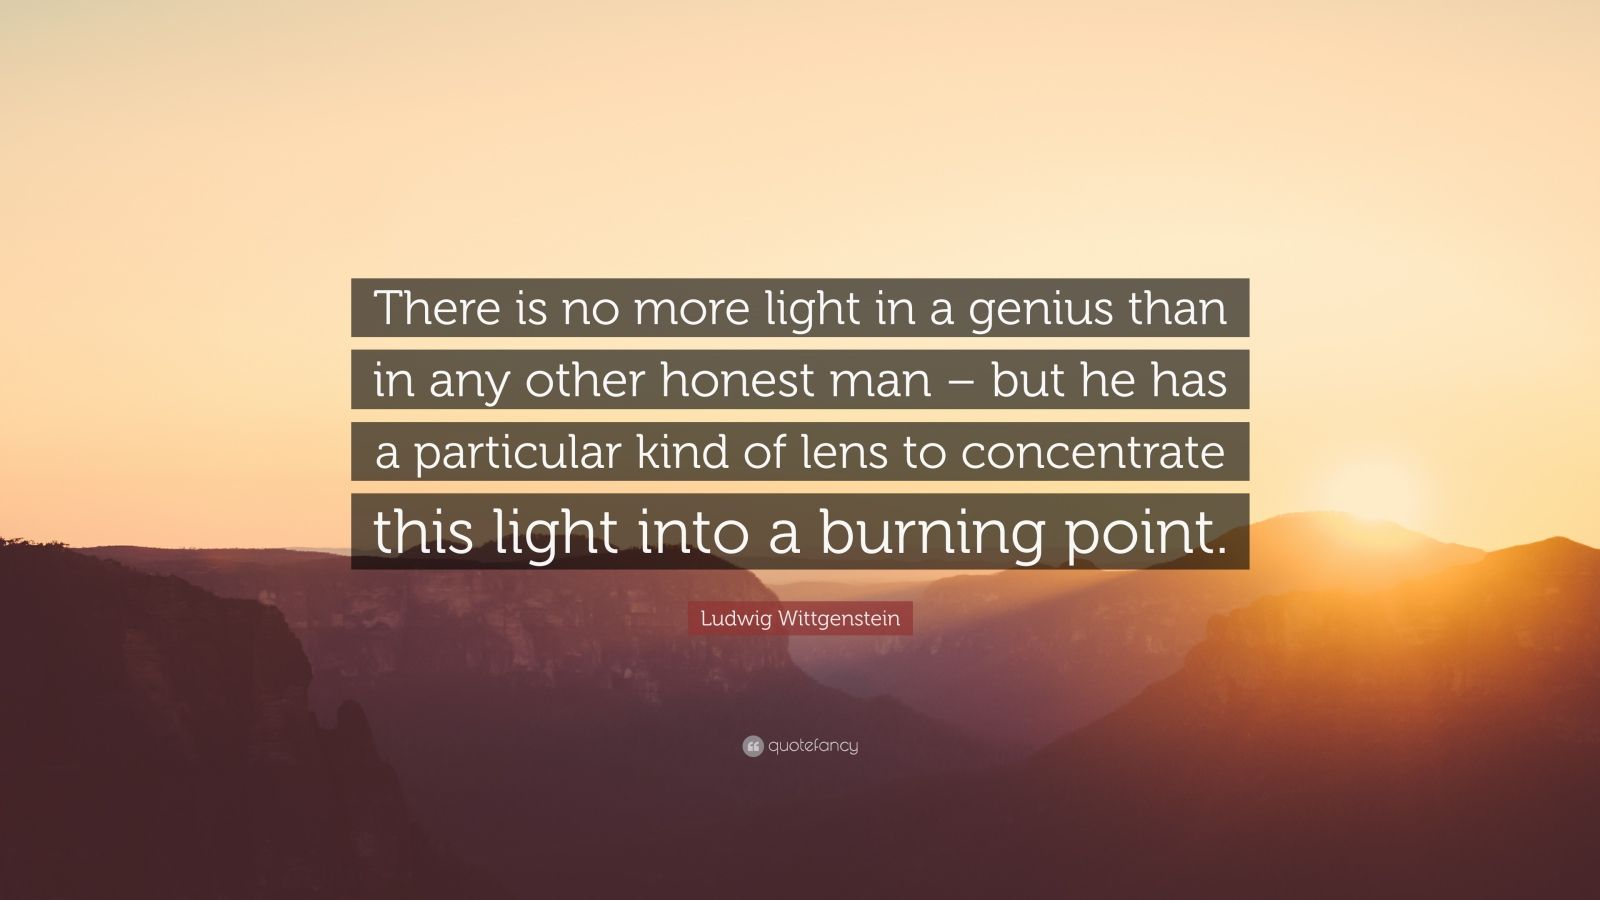 """Ludwig Wittgenstein Quote: """"There is no more light in a genius than in any other honest man – but he has a particular kind of lens to concentrate this light into a burning point."""""""